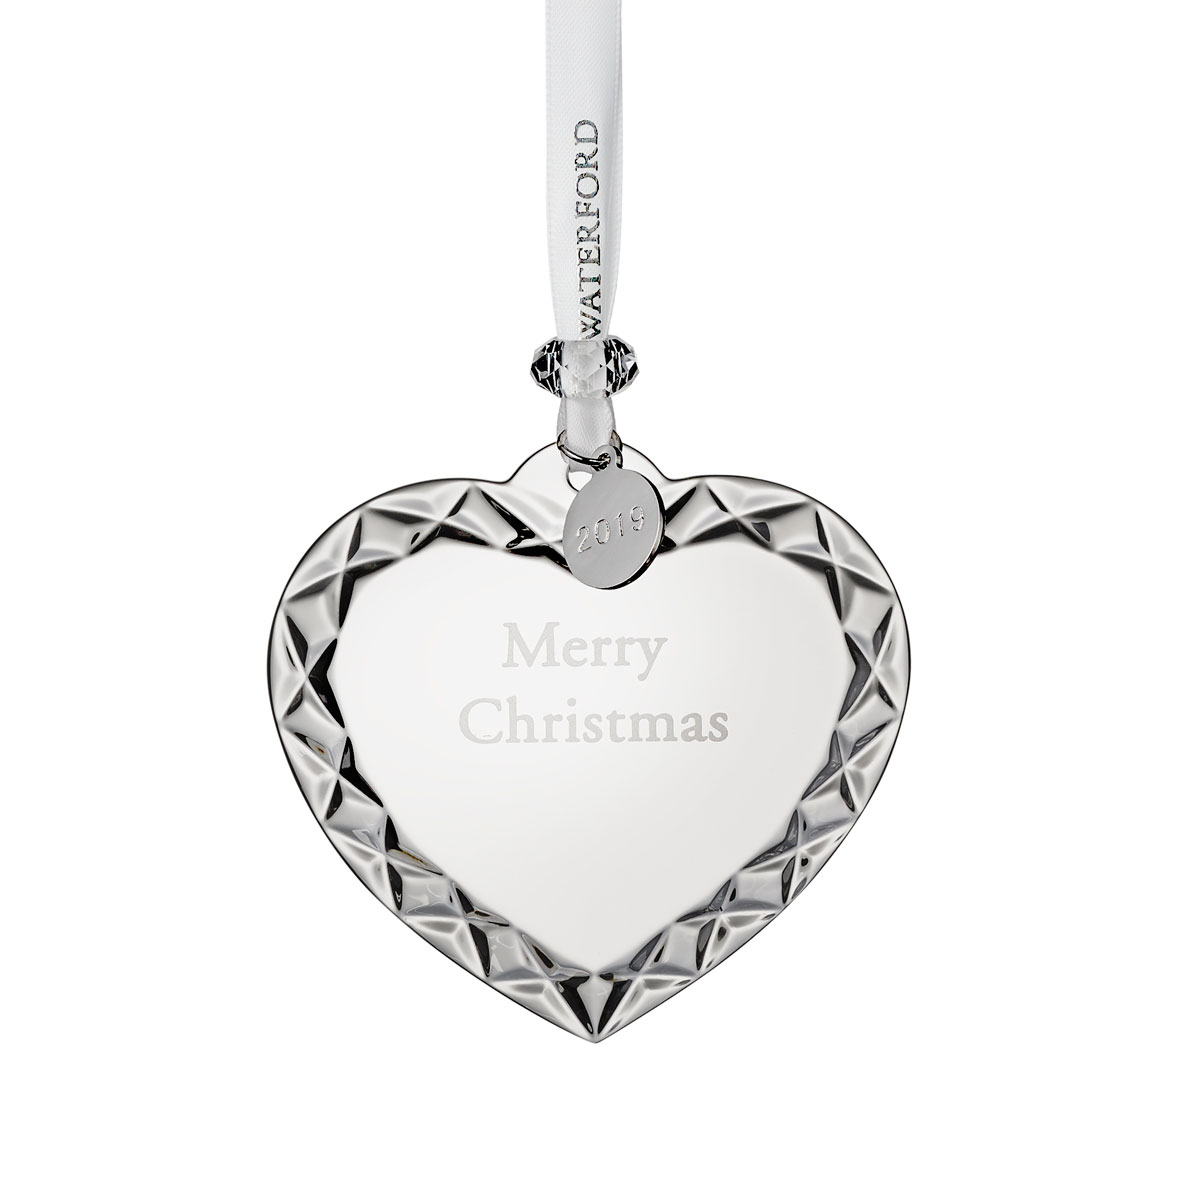 Waterford Crystal 2020 Heart Christmas Ornament